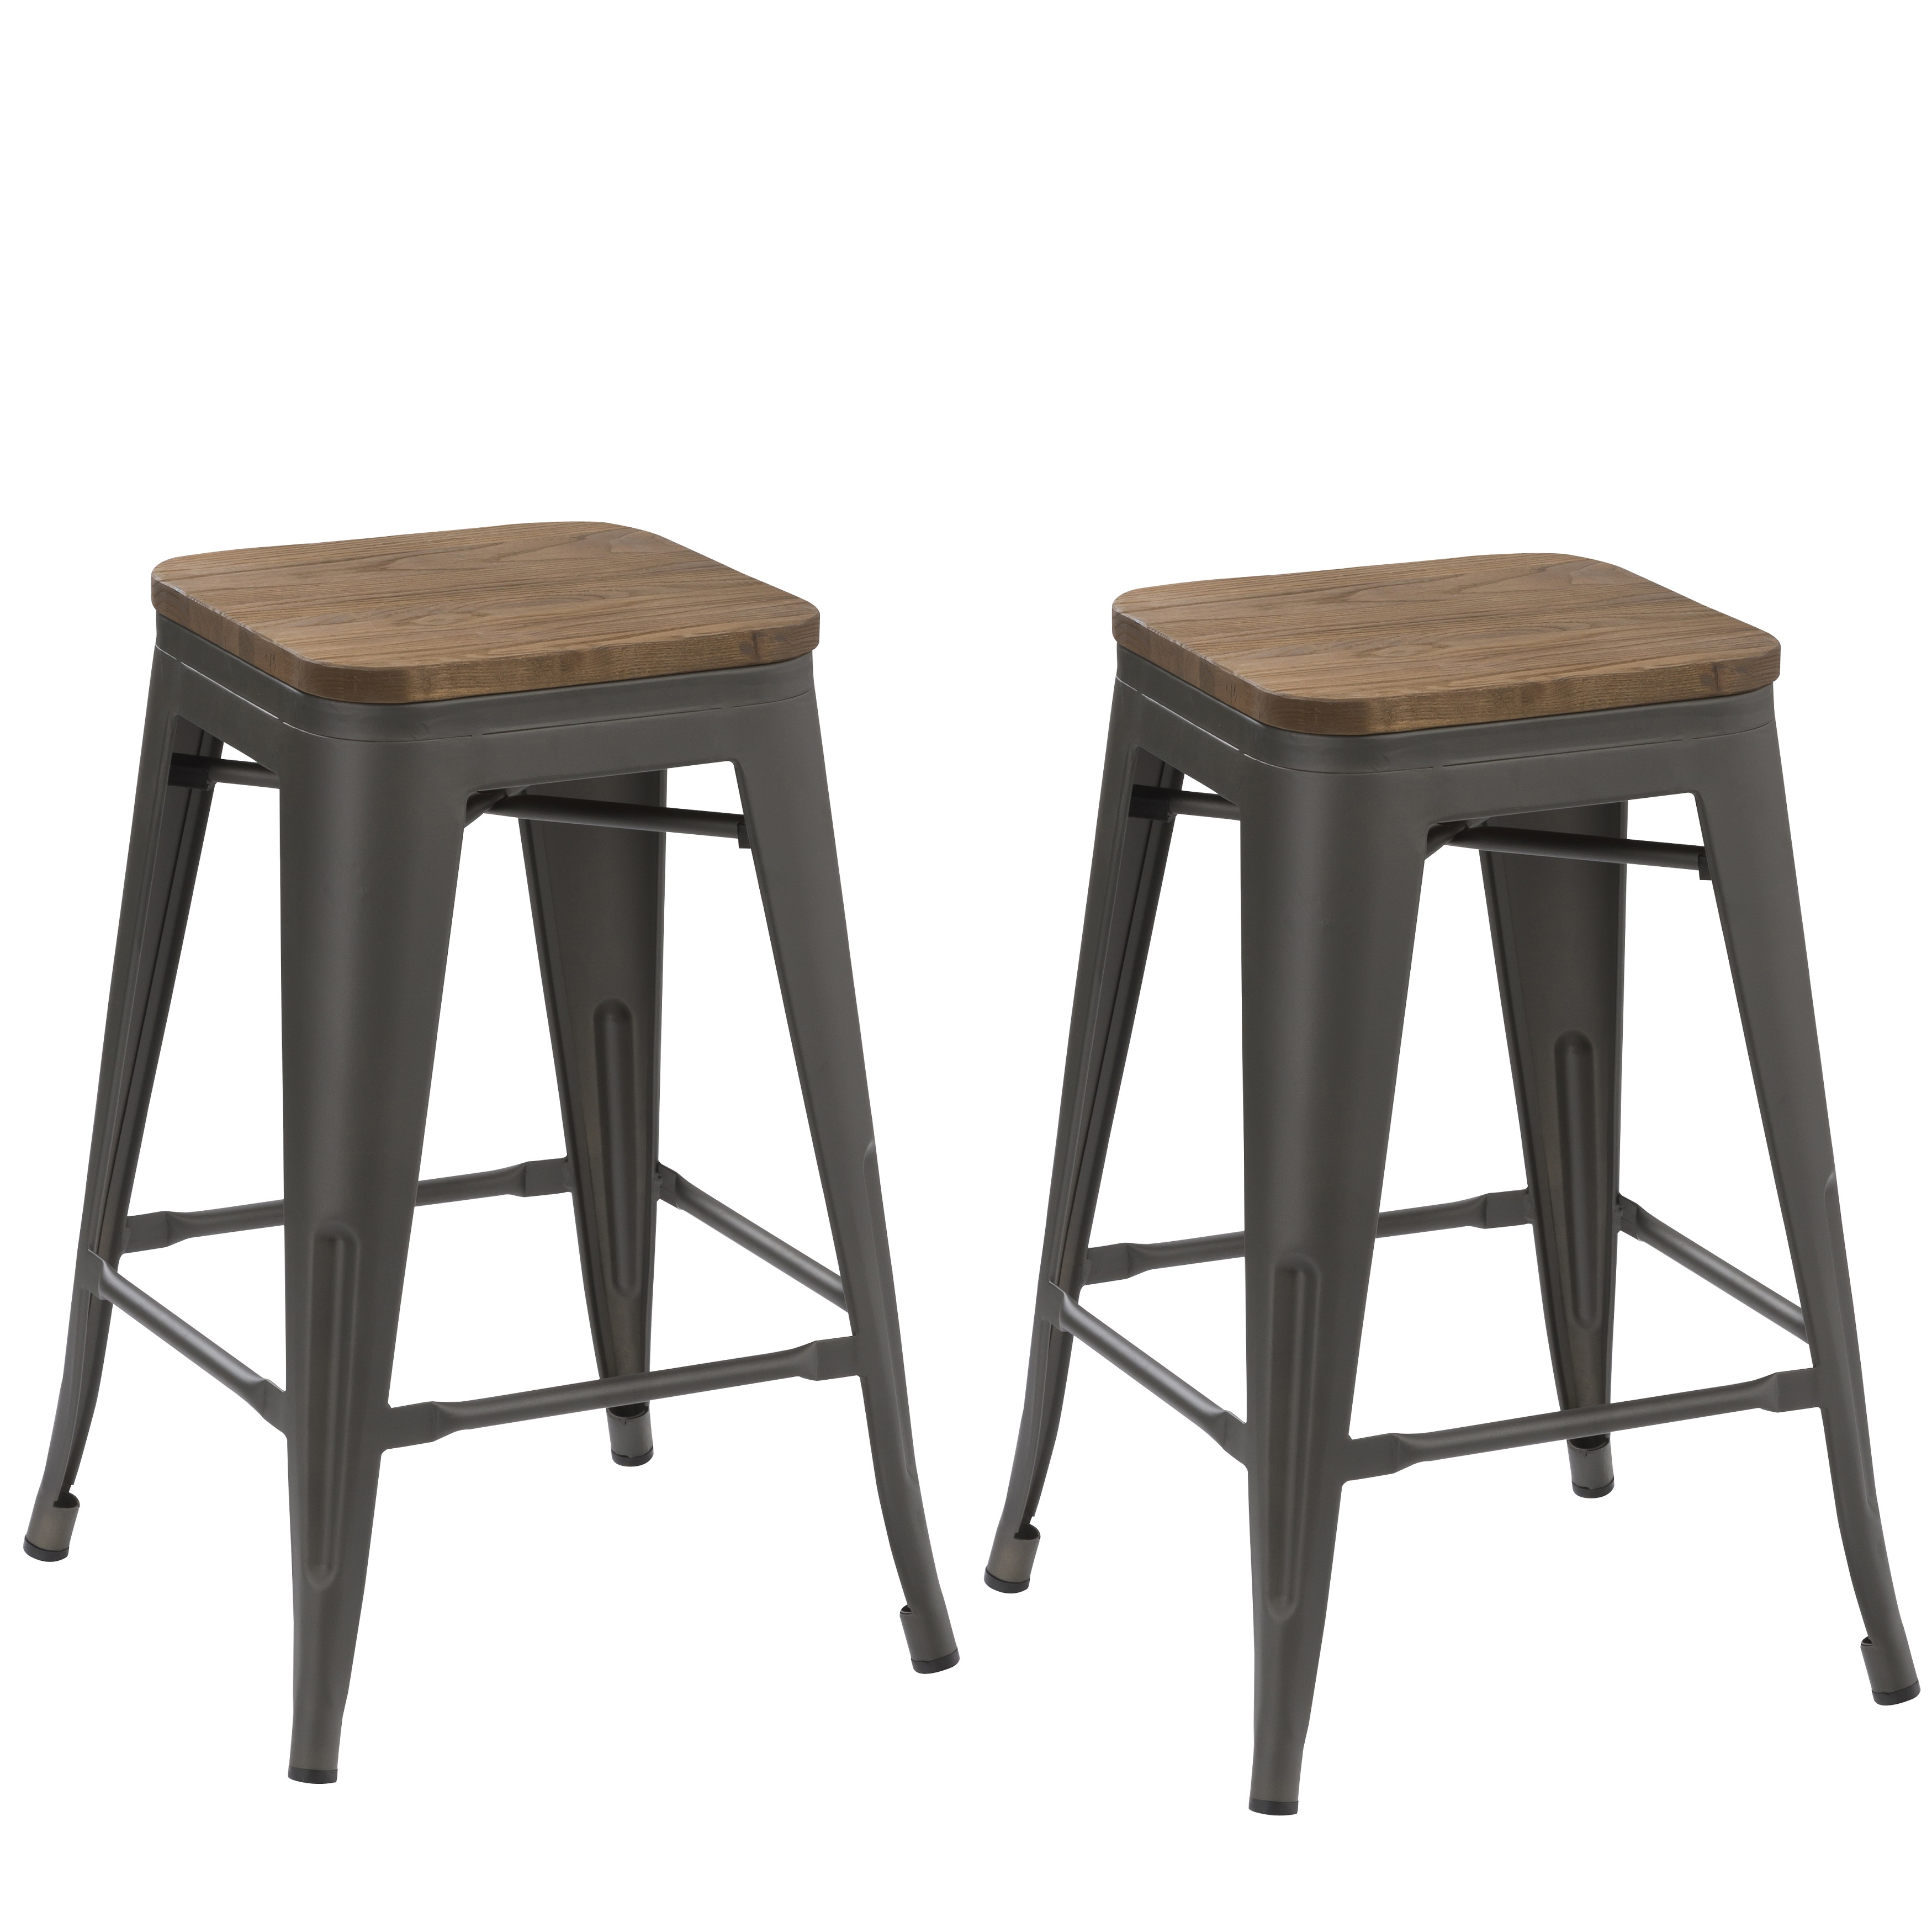 BTEXPERT�� 24-inch Industrial   Antique Distressed Gunmetal stackable Dining Metal Bar Stools Handmade Wood top seat (Set of Two)